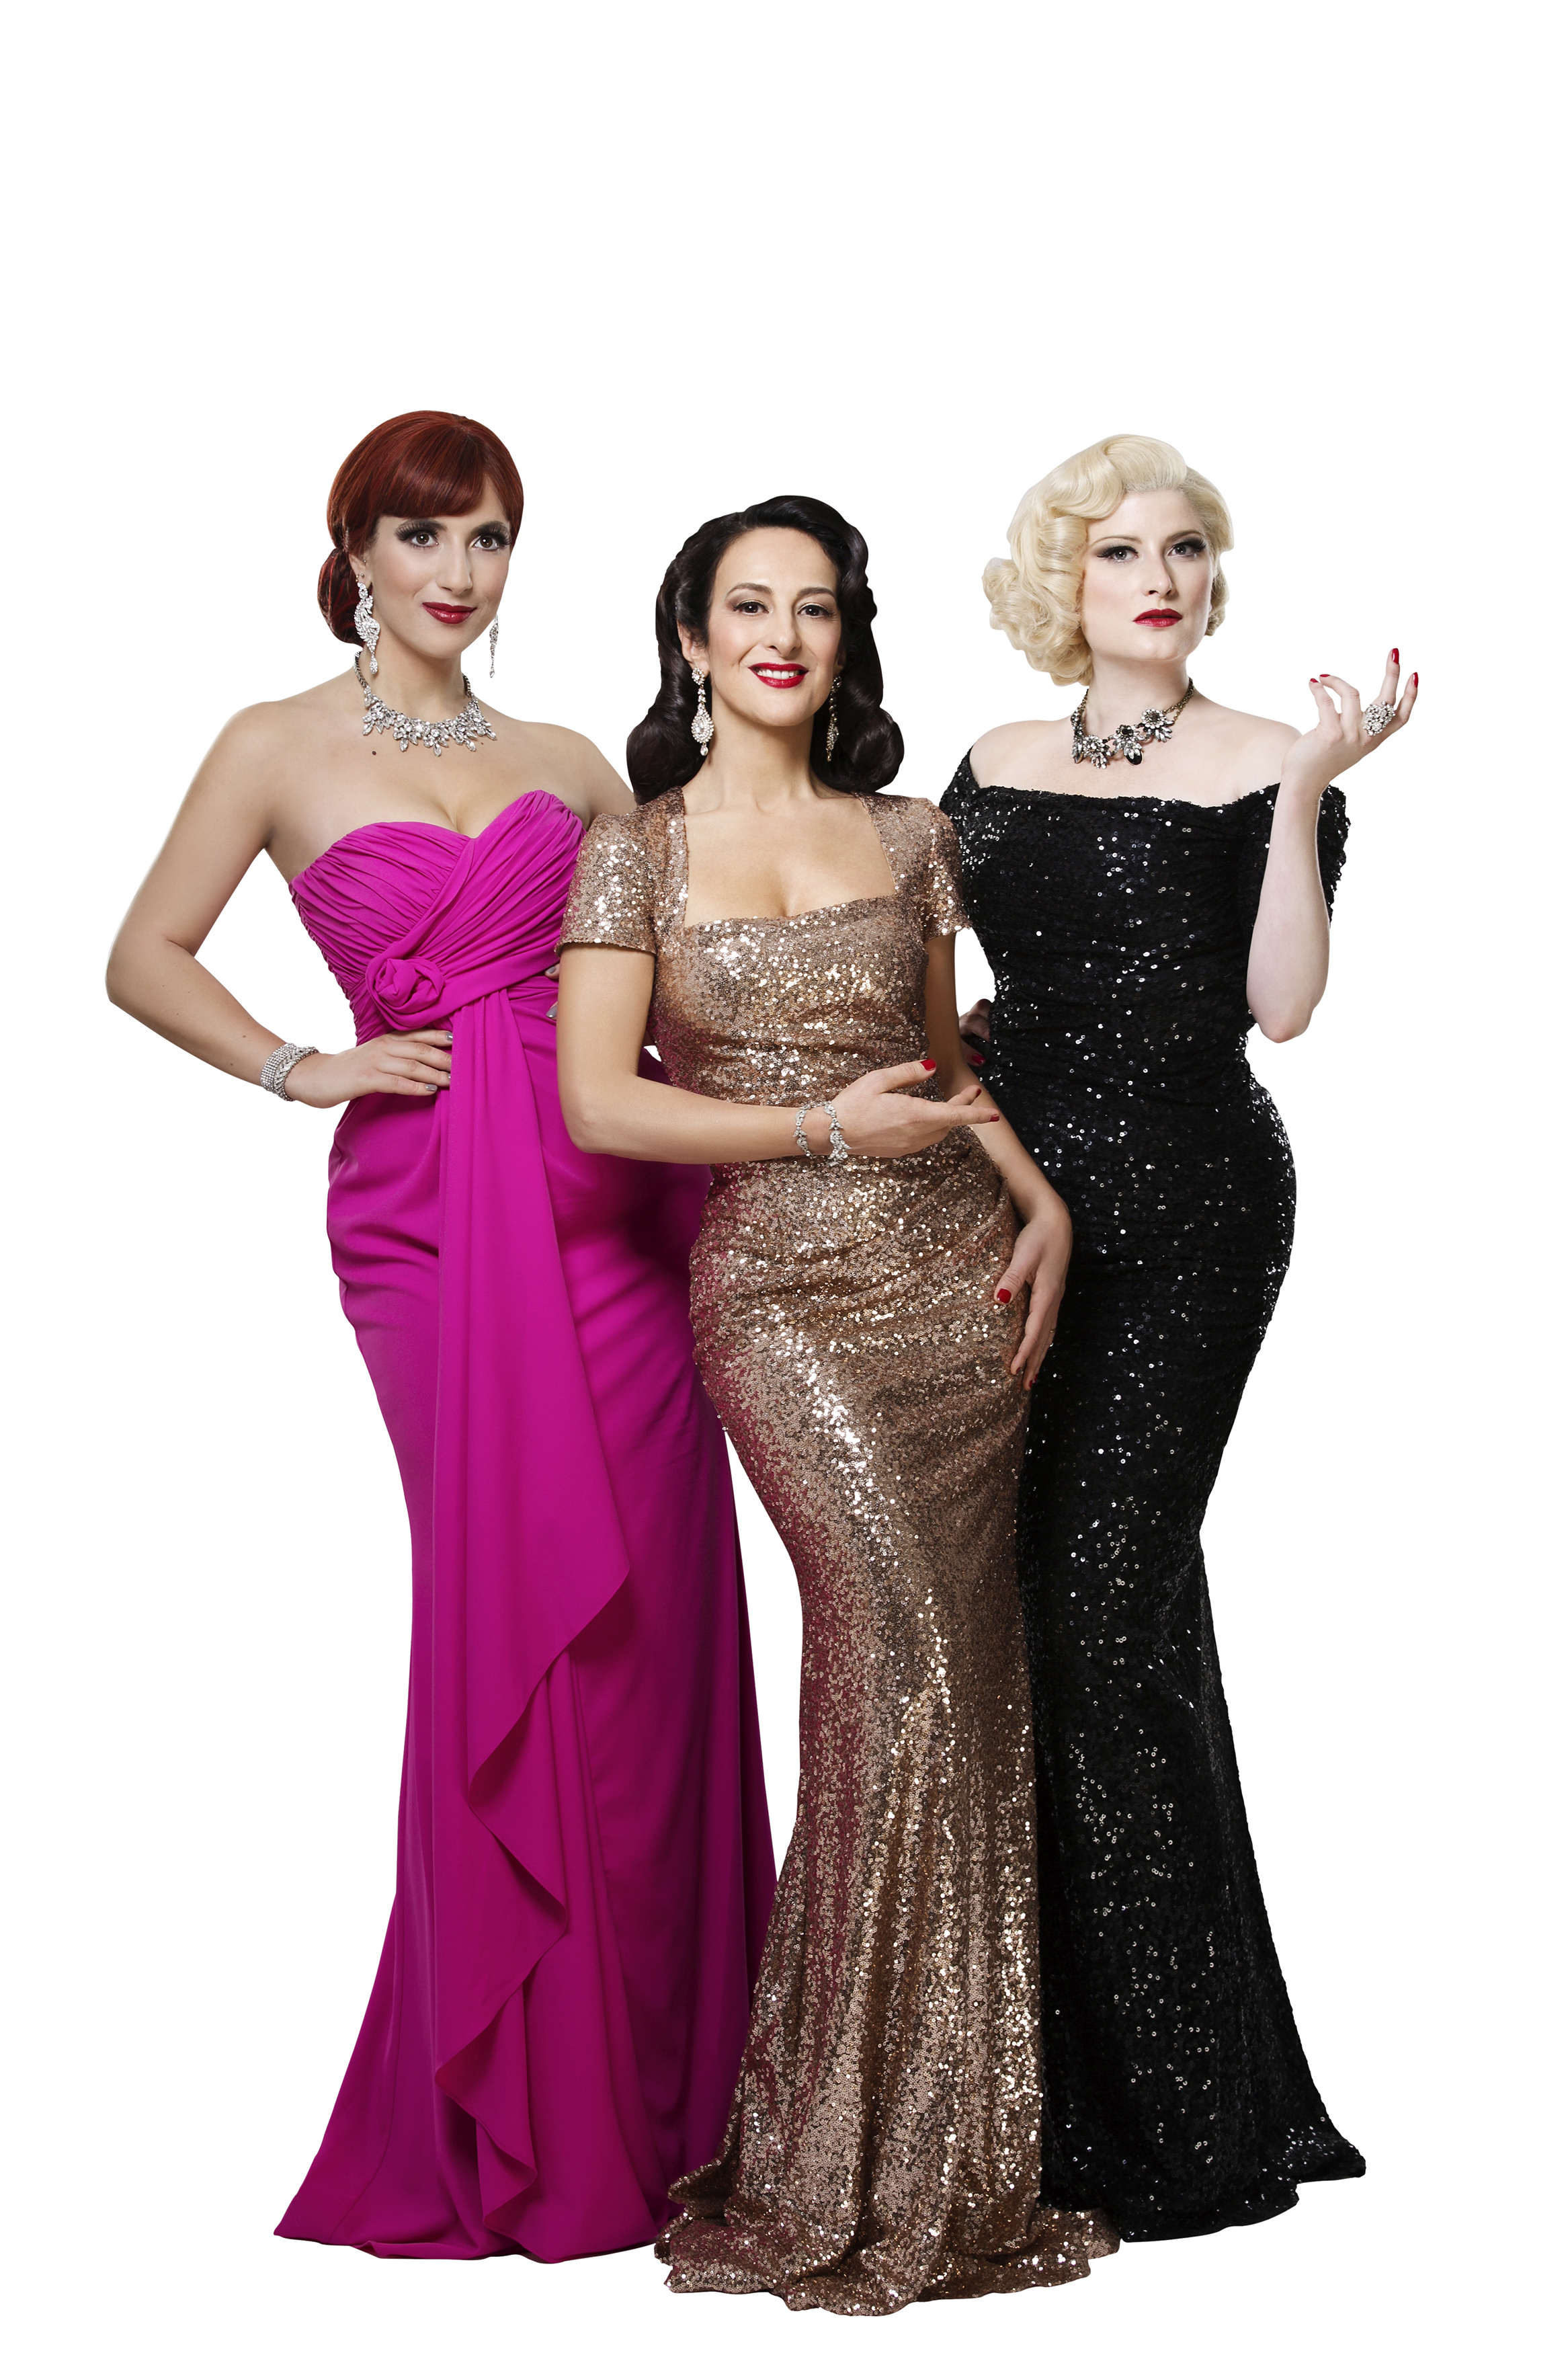 The Puppini Sisters1_(c)HUNCH